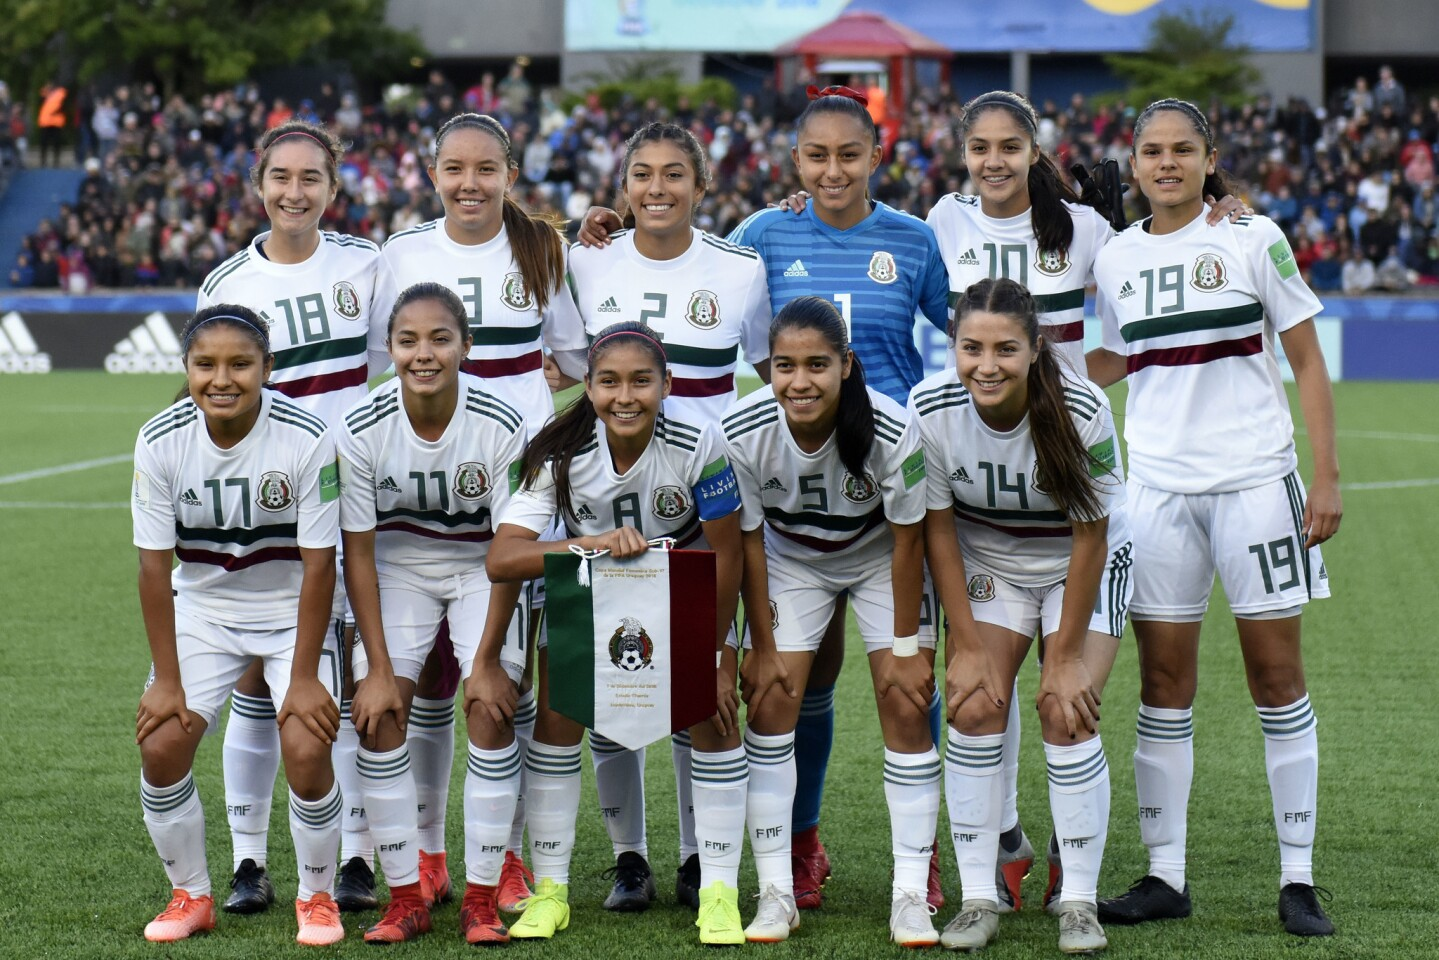 Mexico's players pose for the photo before the 2018 FIFA U-17 Women's World Cup final soccer match against Spain, in Montevideo, Uruguay, Saturday, Dec. 1, 2018. (AP Photo/Matilde Campodonico)